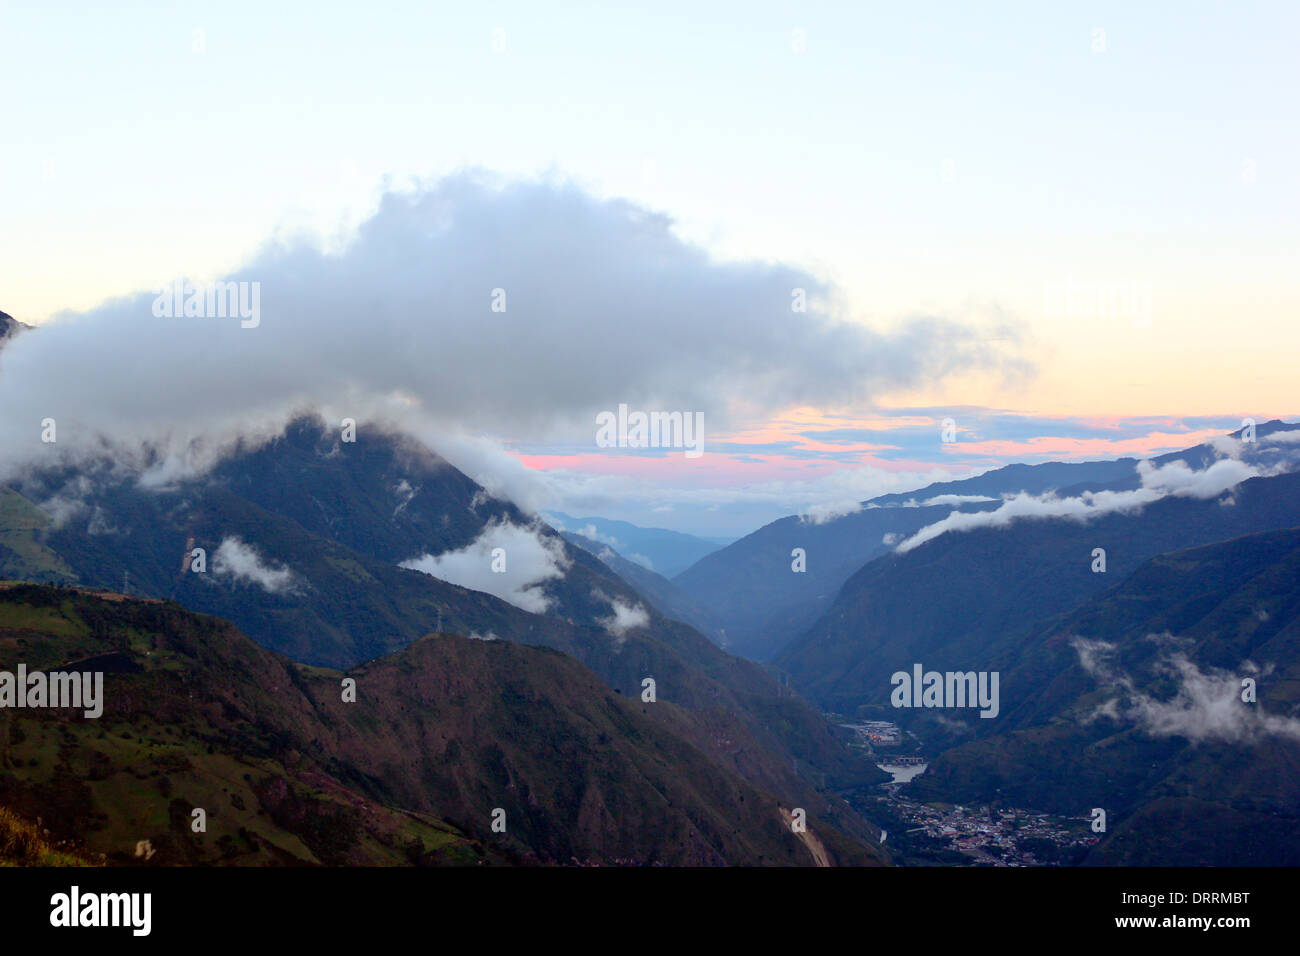 Evening view of the Pastaza Valley in the Ecuadorian Andes - Stock Image